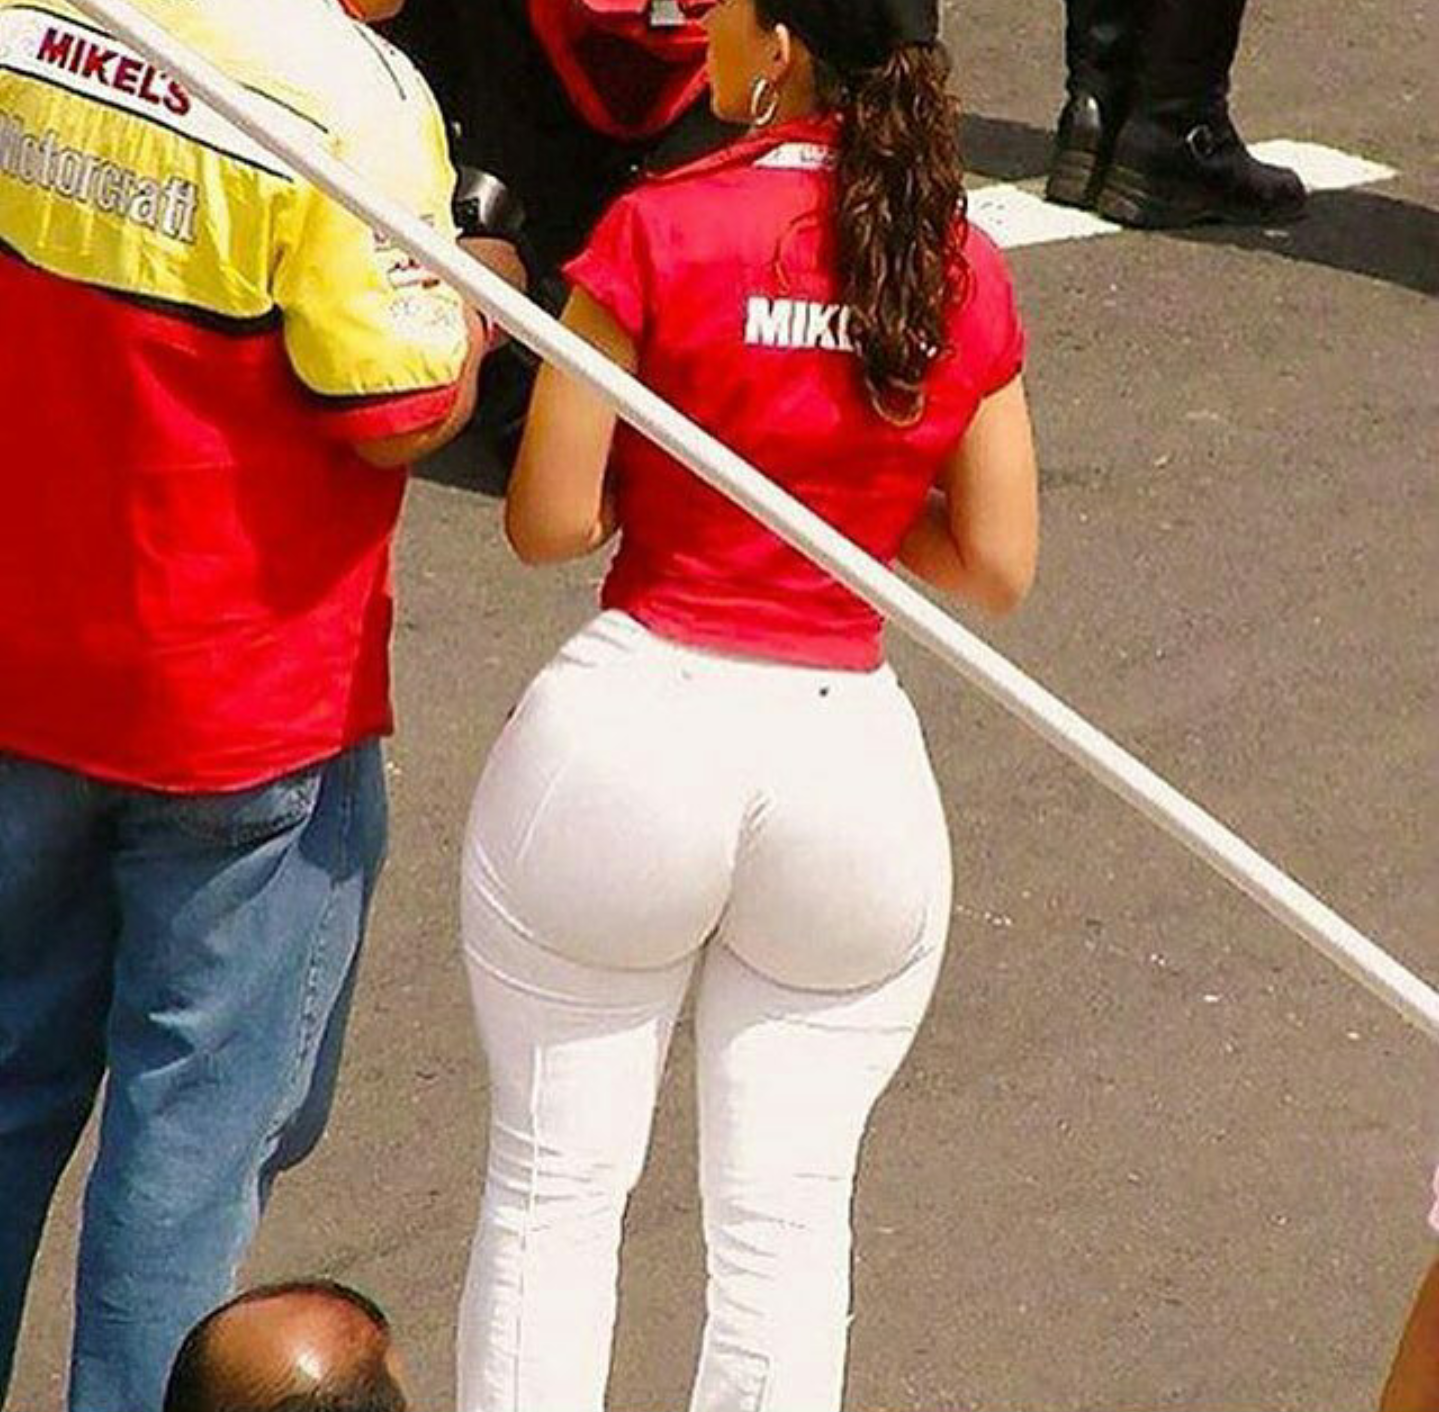 Must Phat ass latino girls hot